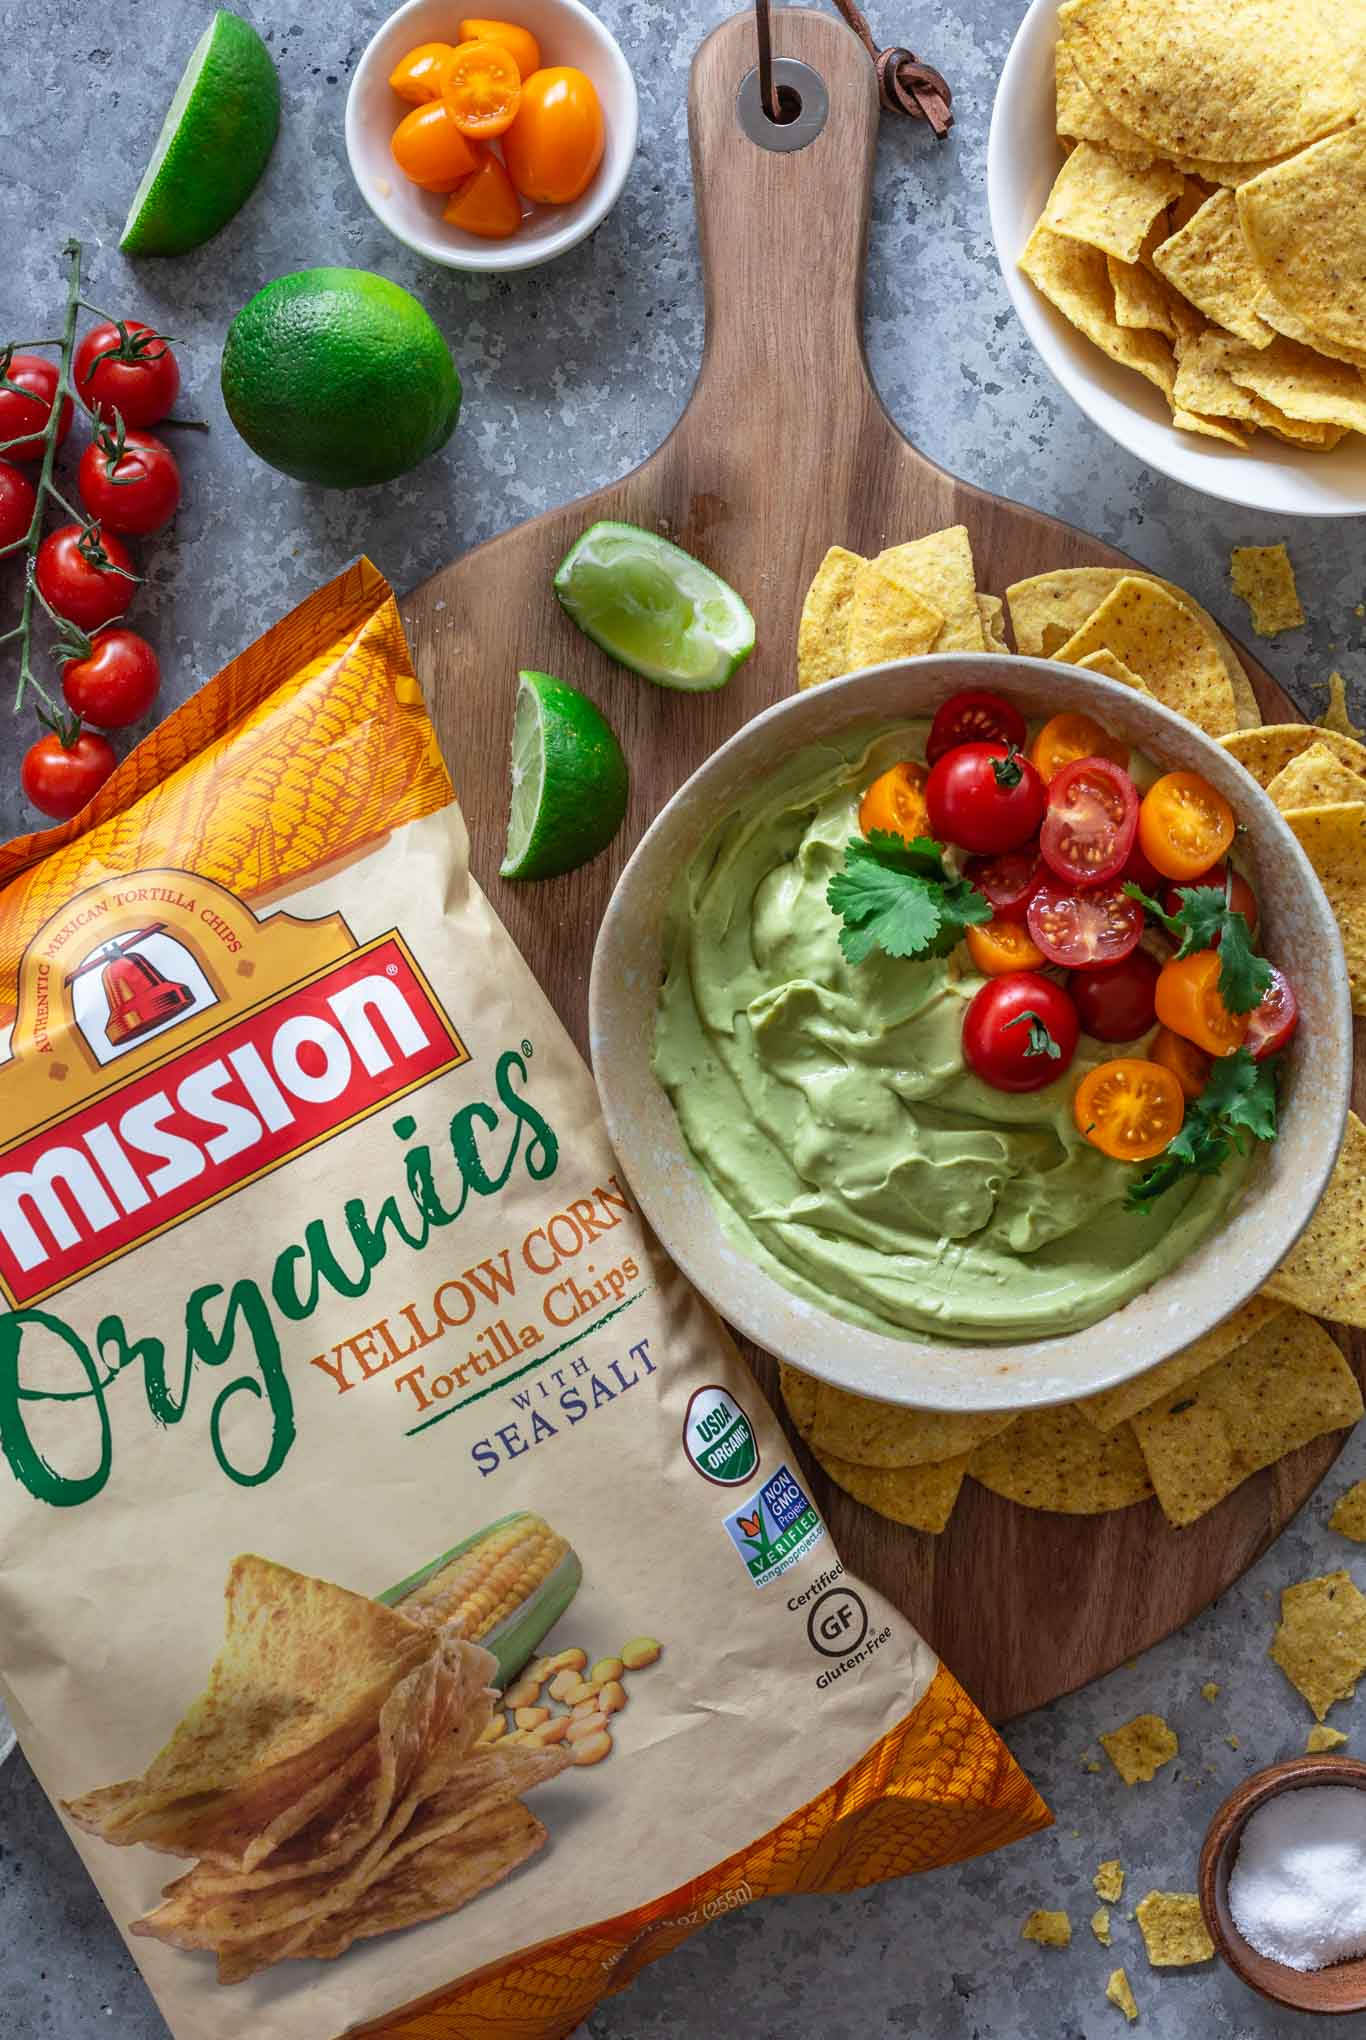 Creamy avocado dip served with Mission Tortilla Chips.